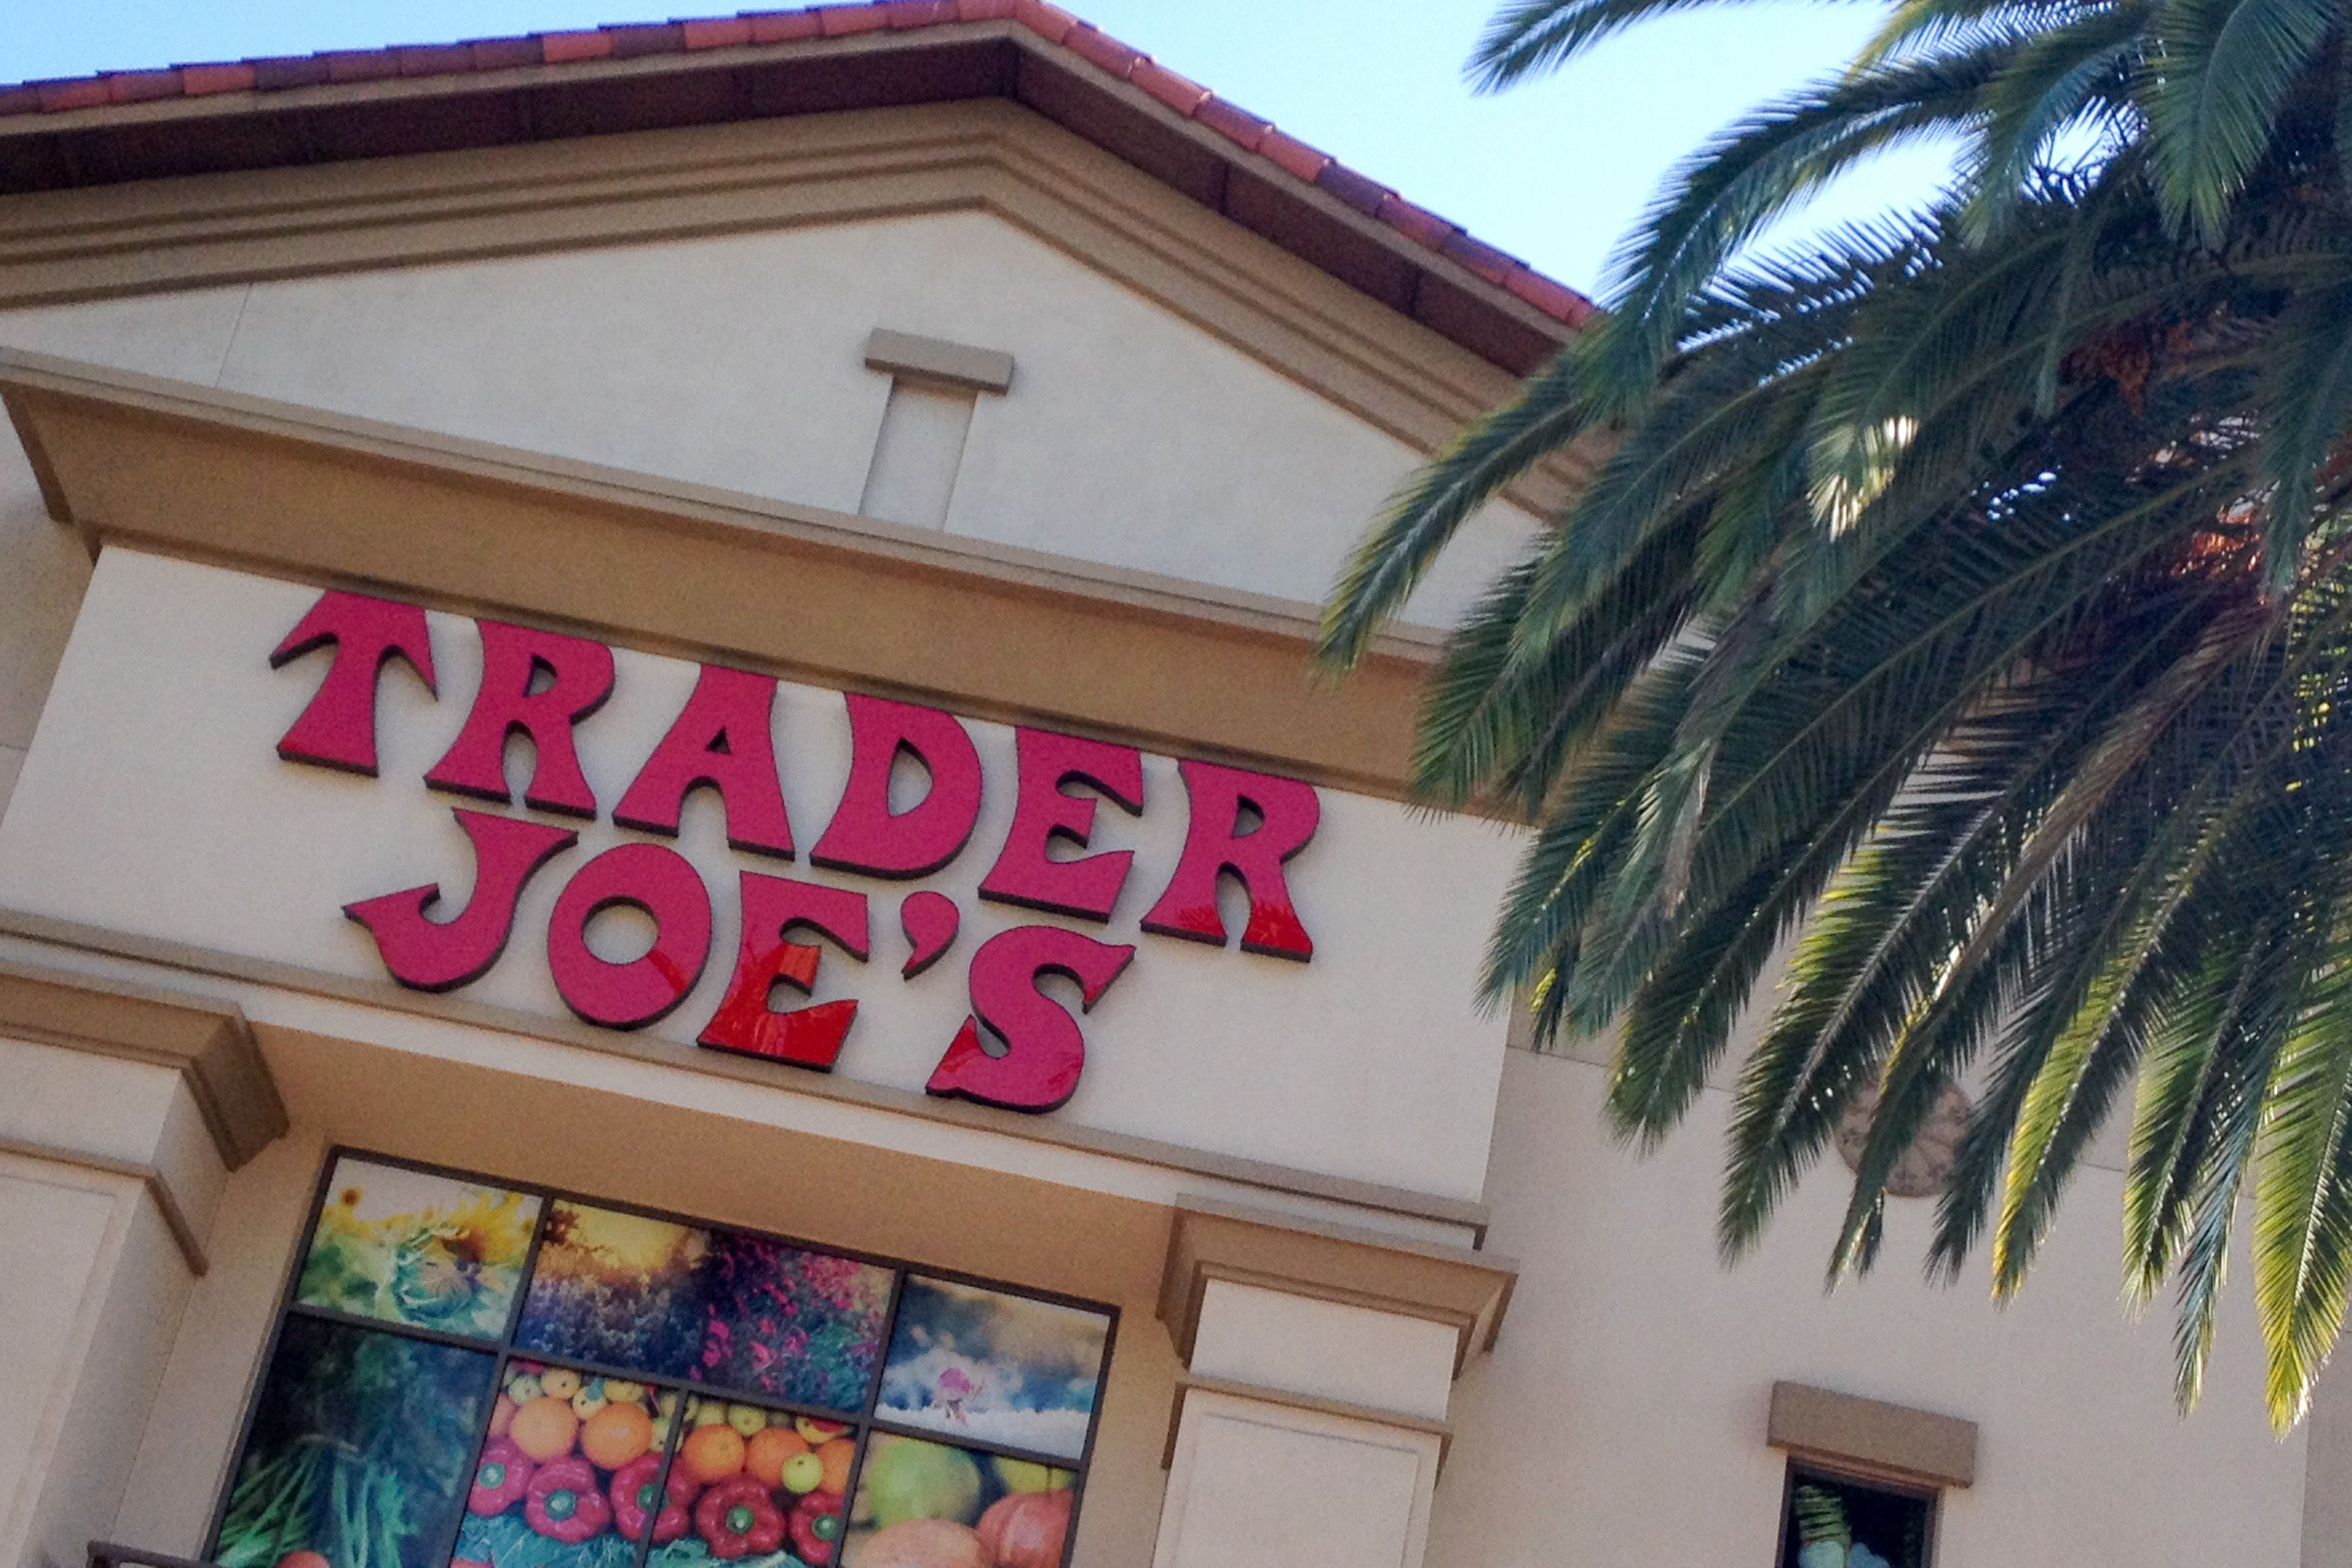 A Trader Joe's Employee Shares Fascinating Insider Secrets